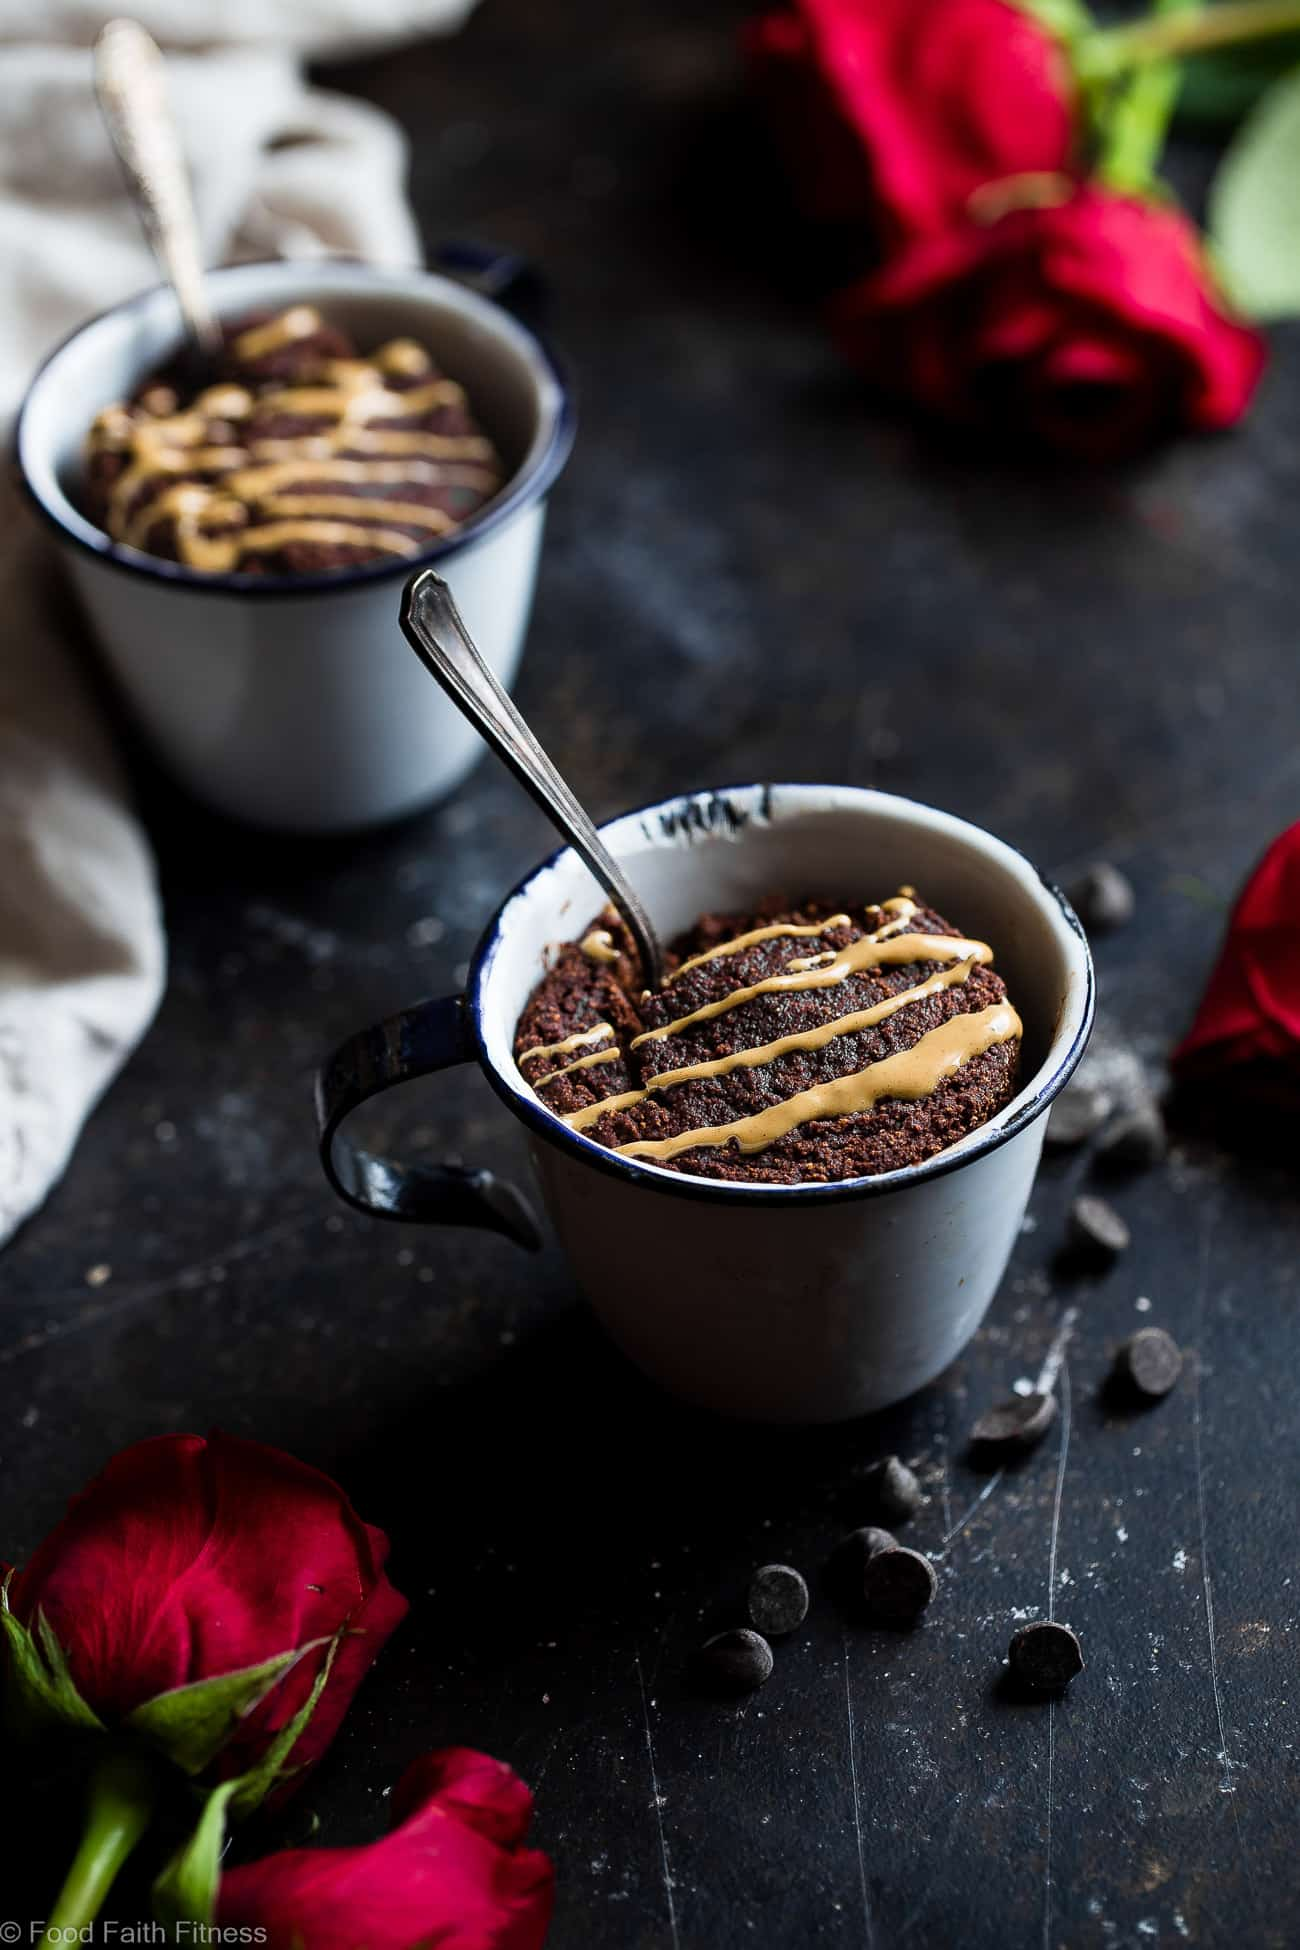 Coconut Flour Chocolate Paleo Mug Cake - A gluten/grain/dairy/sugar free treat that is vegan friendly, ready in 10 minutes and better for you! A healthy dessert at its best! | #Foodfaithfitness | #paleo #vegan #glutenfree #mugcake #chocolate